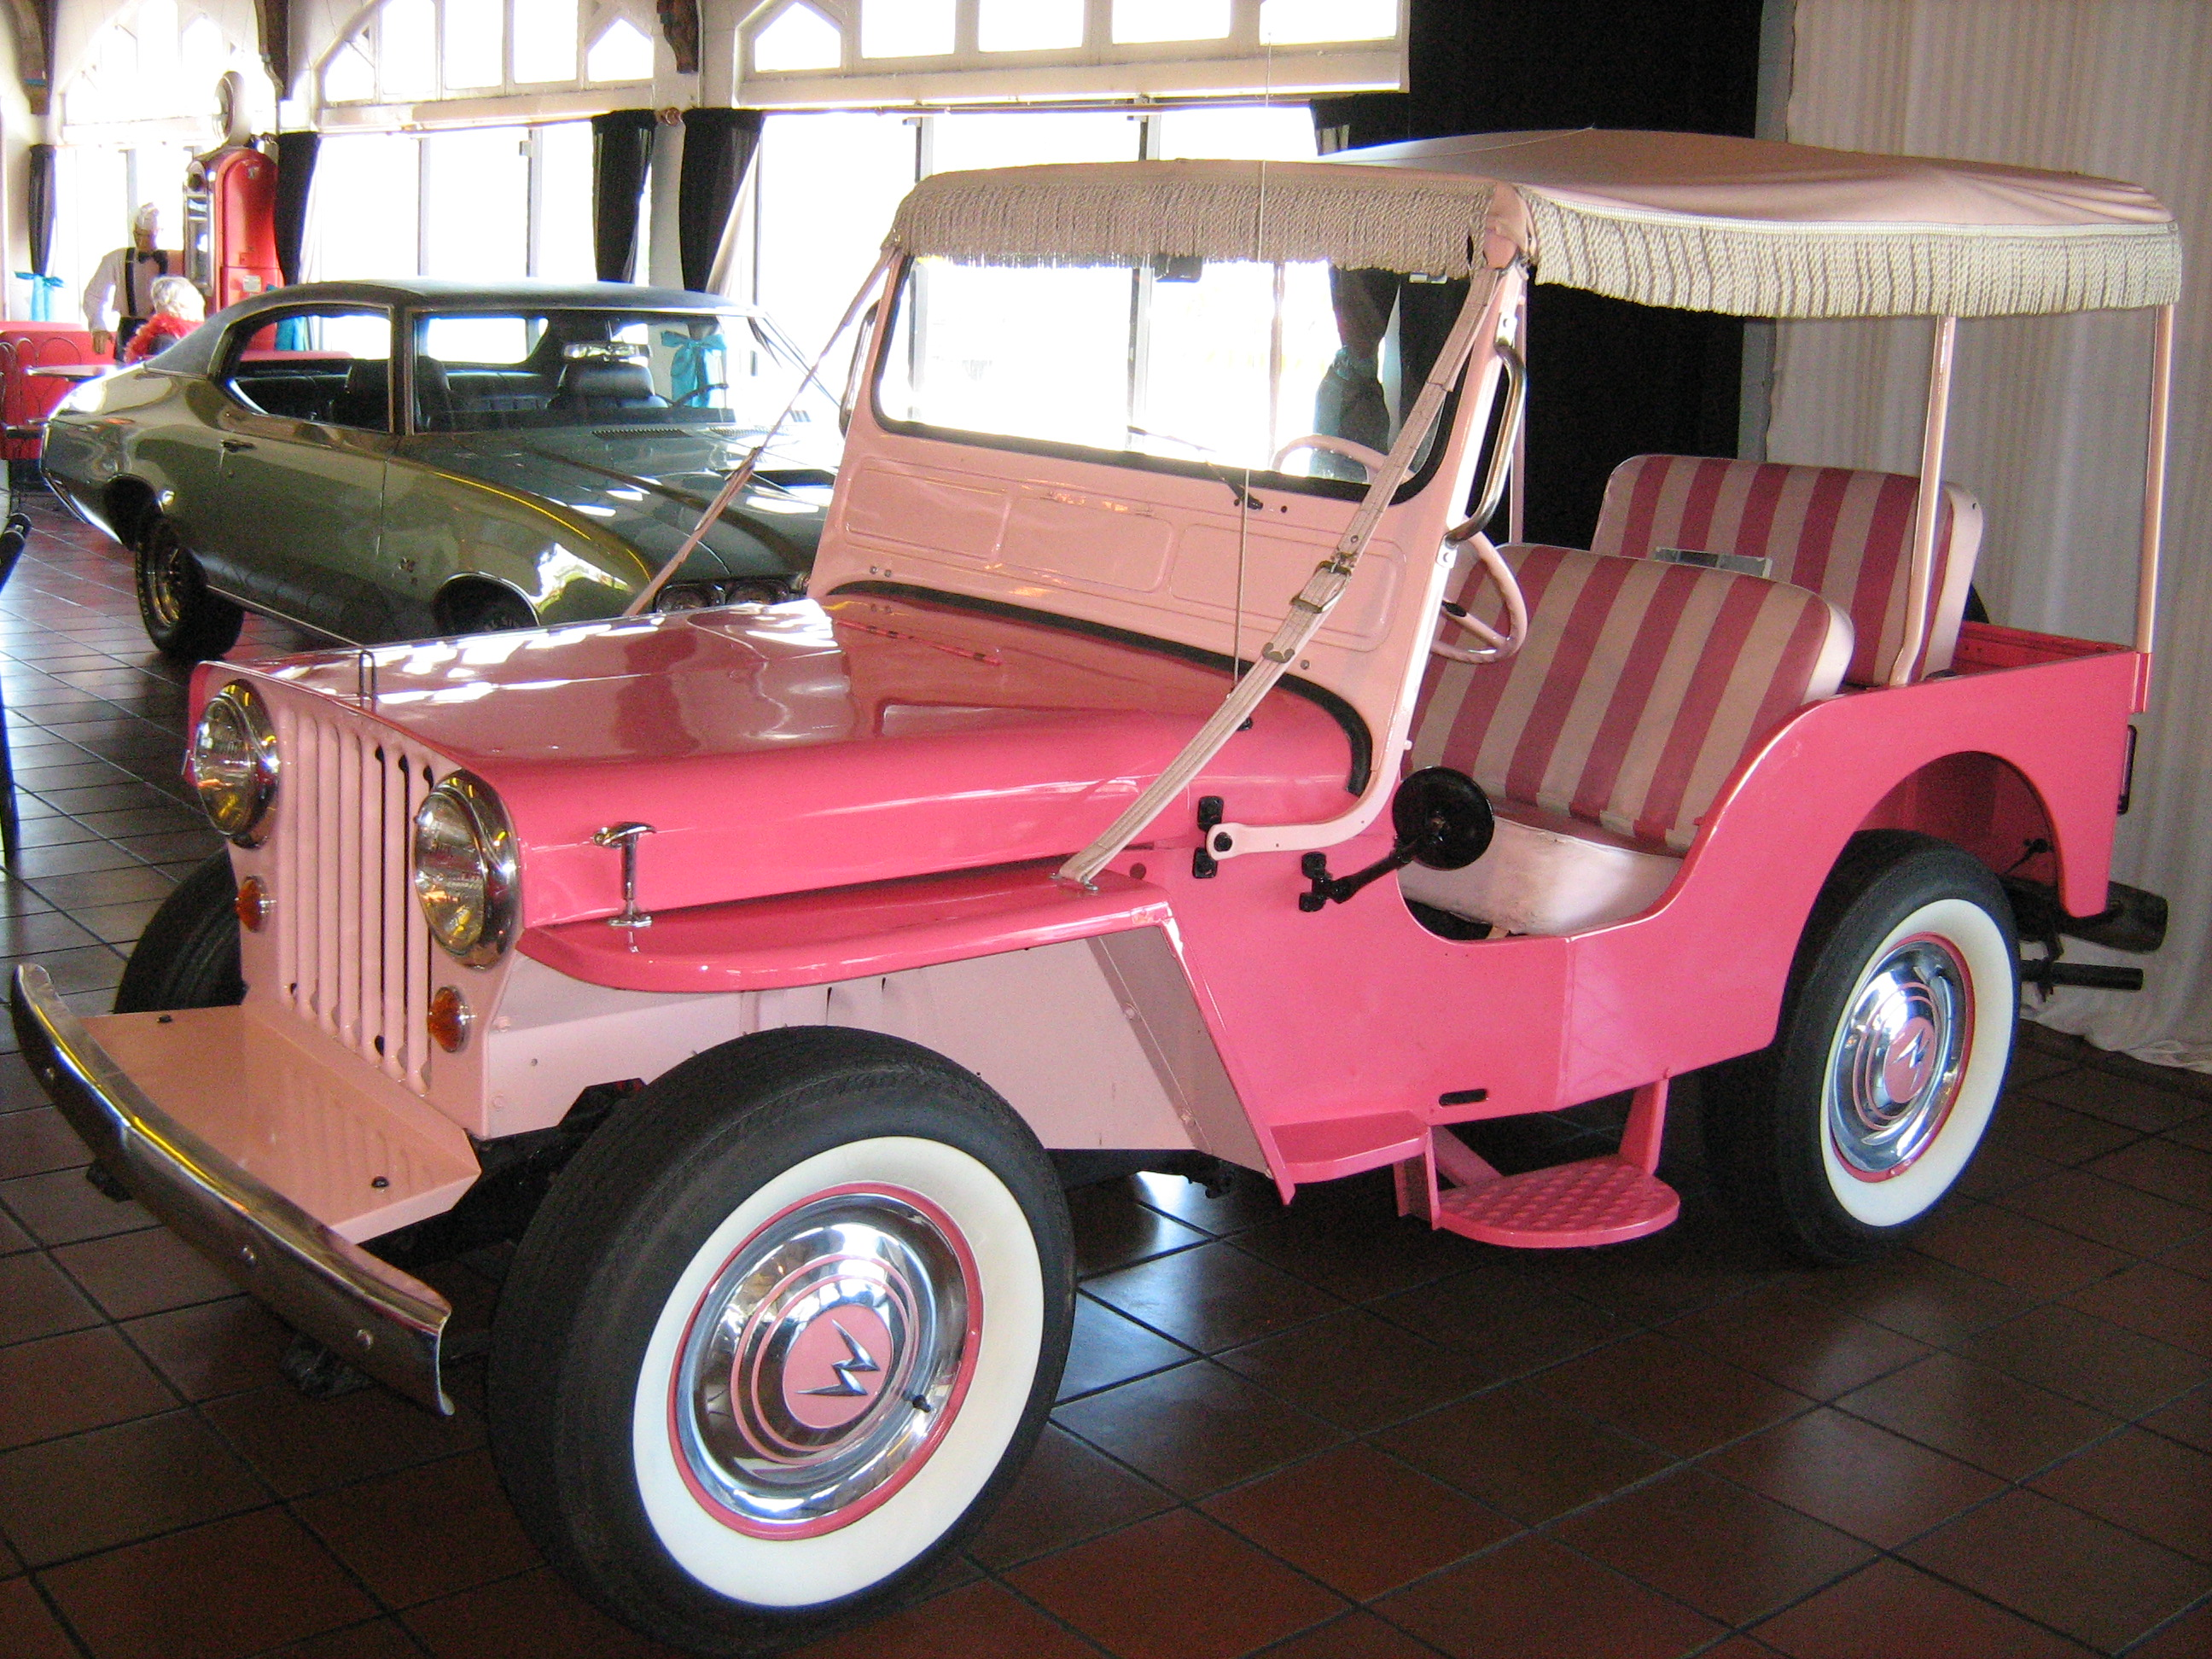 1965 Willys_Jeep_Gala_Surrey_pink jeep dj wikipedia  at bayanpartner.co